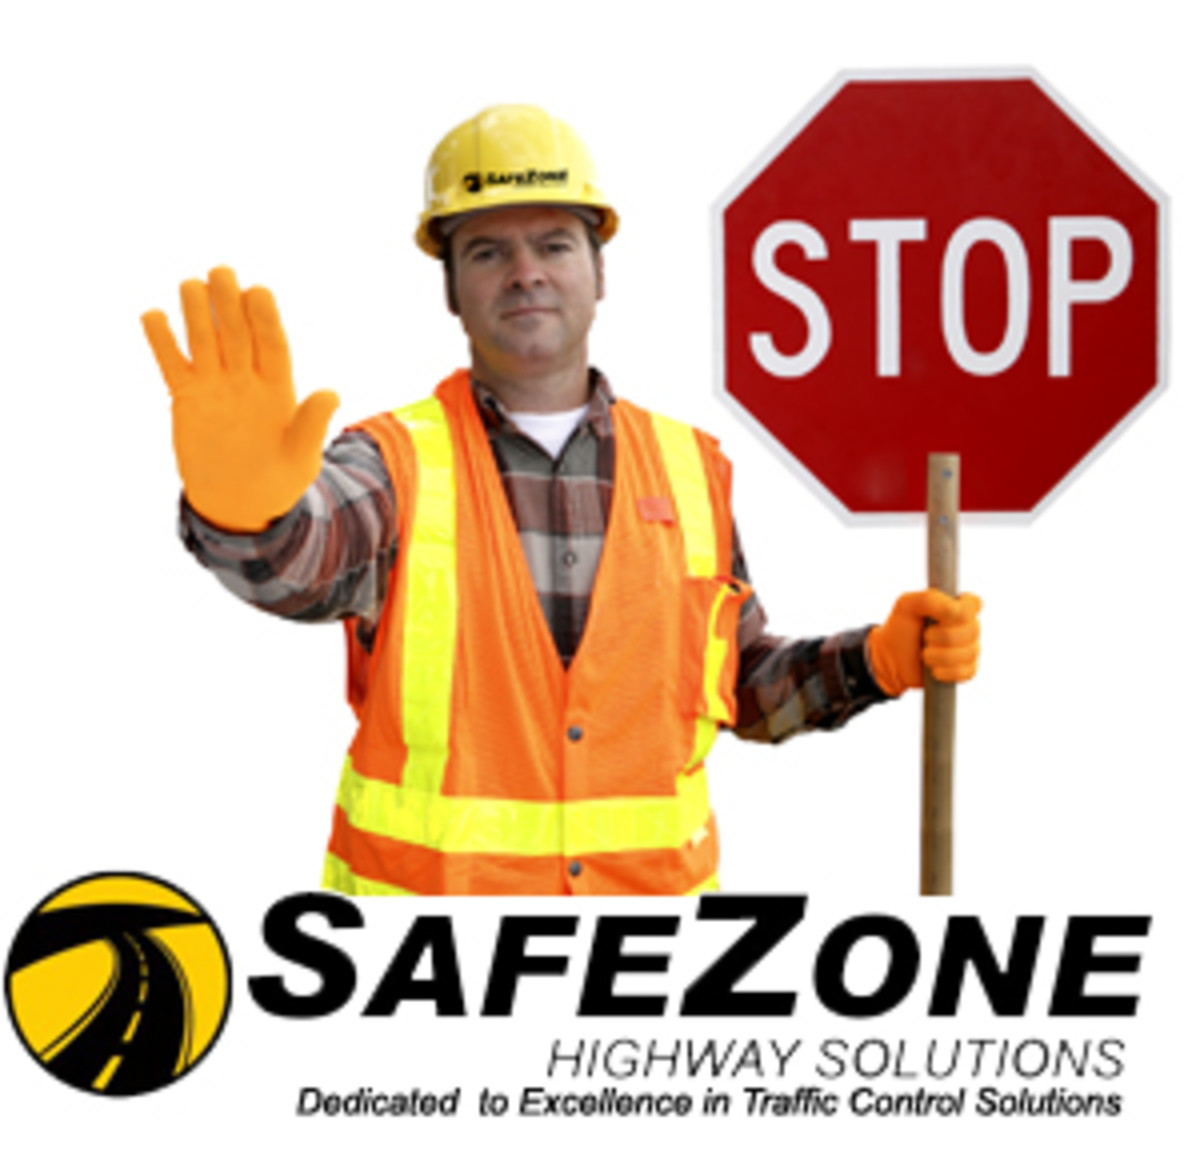 Construction Road Safety - Flaggers are Your Friend